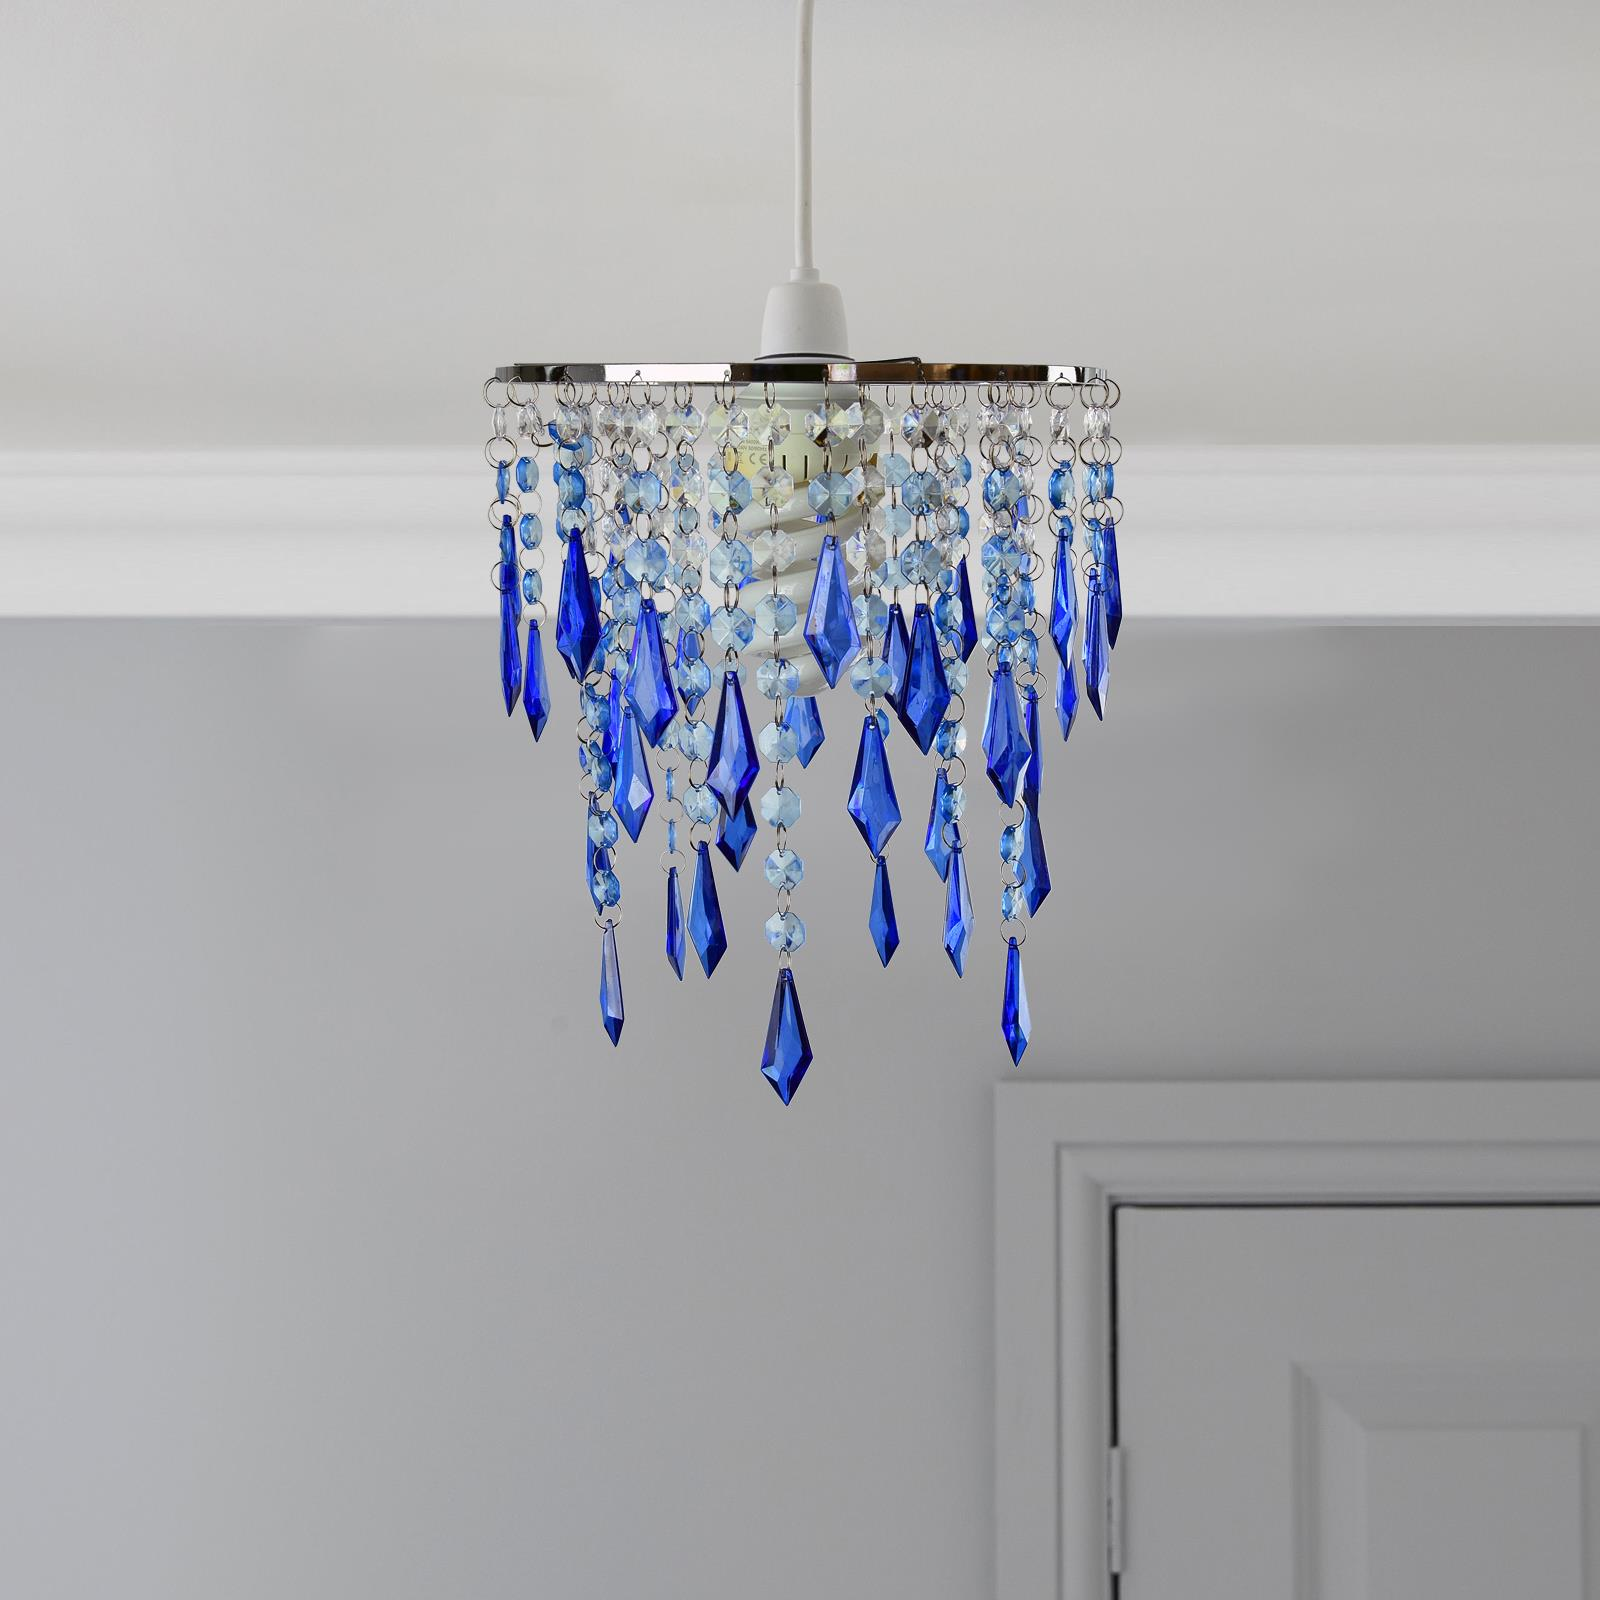 Modern-Chandelier-Style-Ceiling-Light-Lamp-Shade-Drop-Pendant-Acrylic-Crystal thumbnail 25